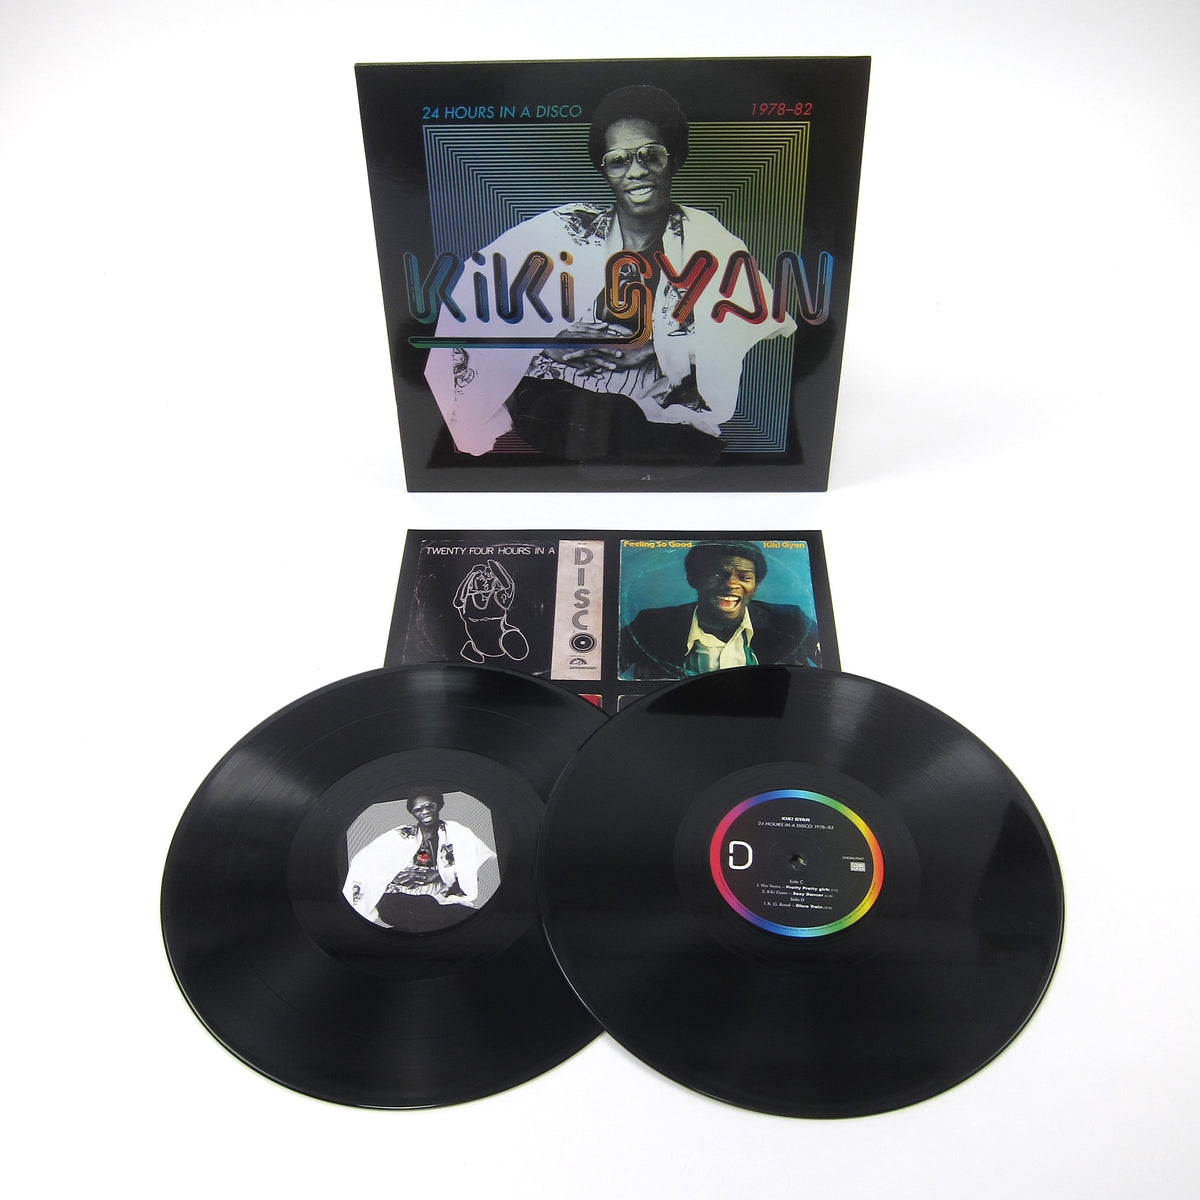 Kiki Gyan: 24 Hours In A Disco 1978-82 (180g) Vinyl 2LP